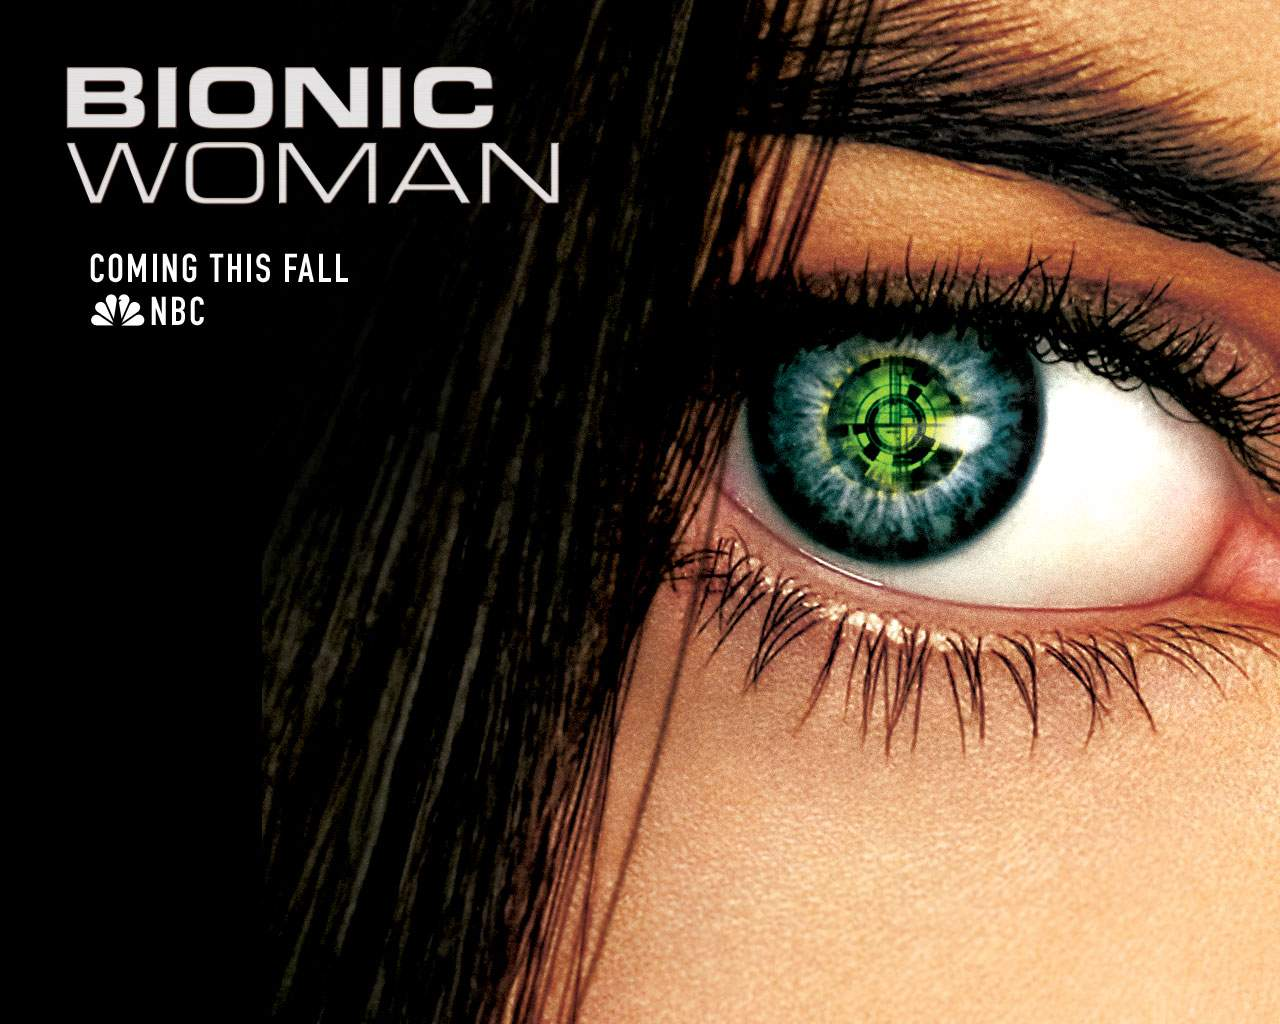 Wallpaper Cinema Video Bionic Woman Michelle Ryan Jaime Sommers